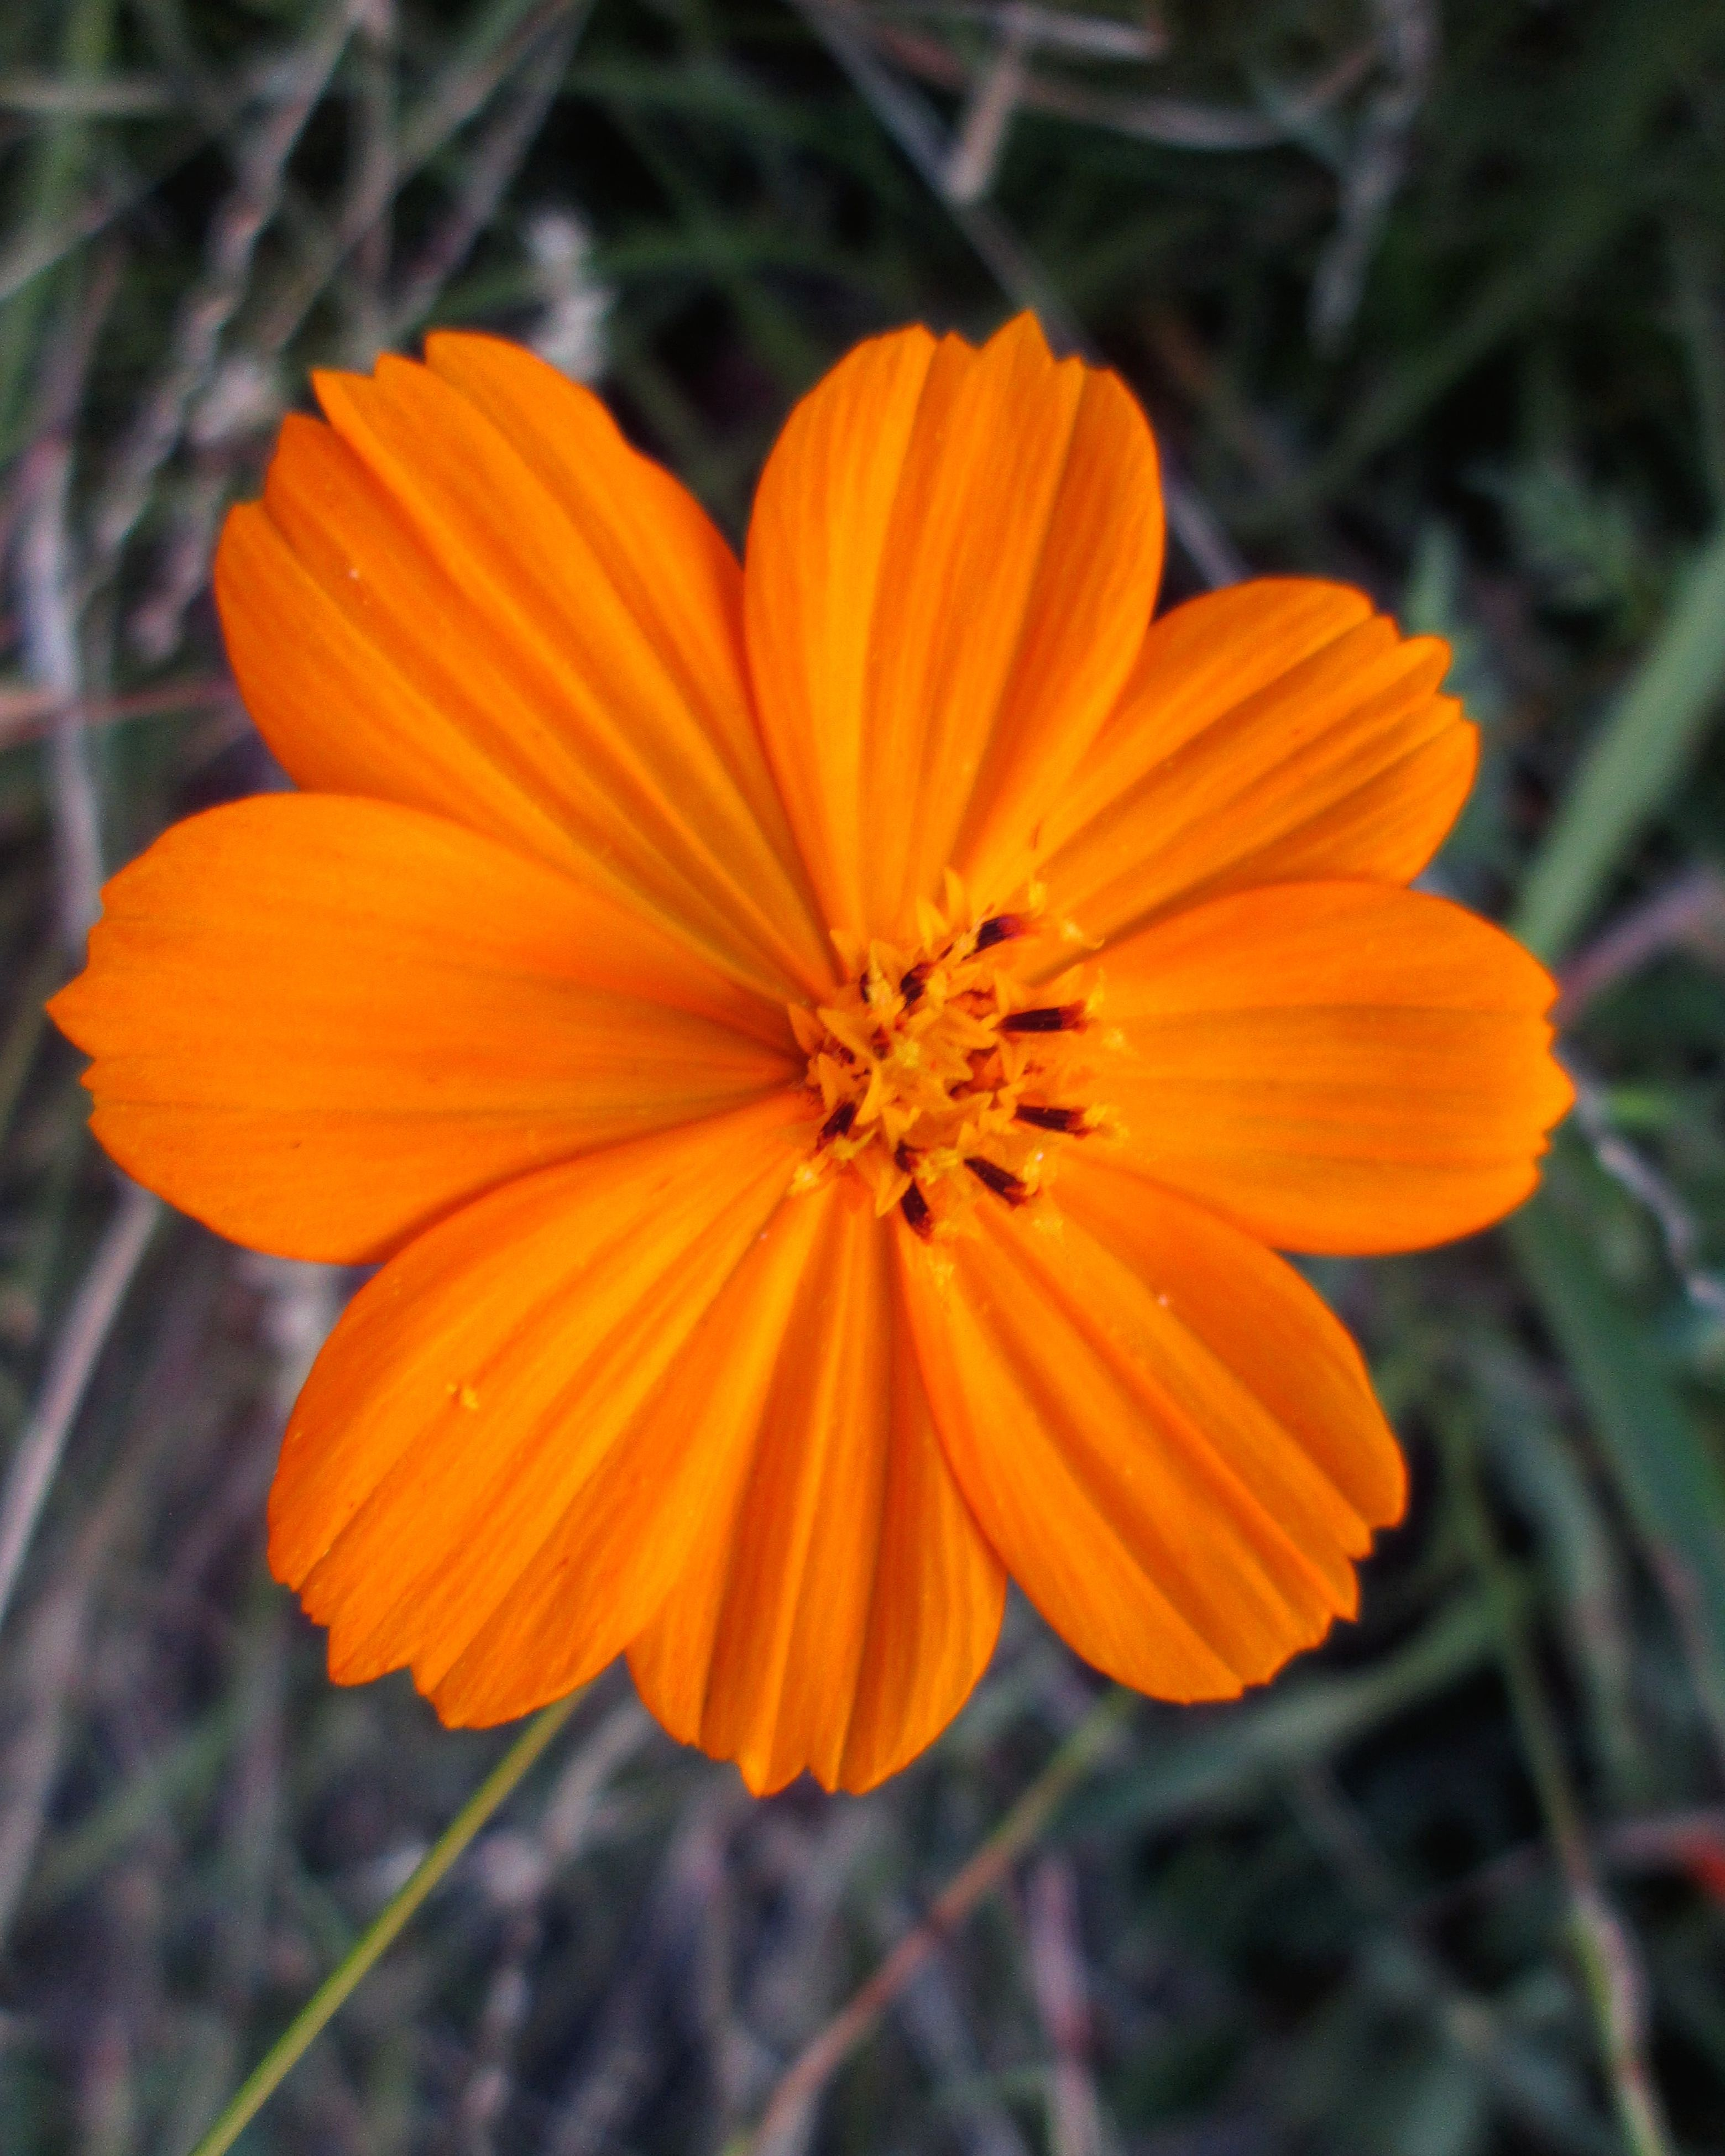 flower, petal, freshness, fragility, flower head, orange color, close-up, growth, focus on foreground, beauty in nature, pollen, nature, blooming, yellow, stamen, plant, single flower, in bloom, outdoors, no people